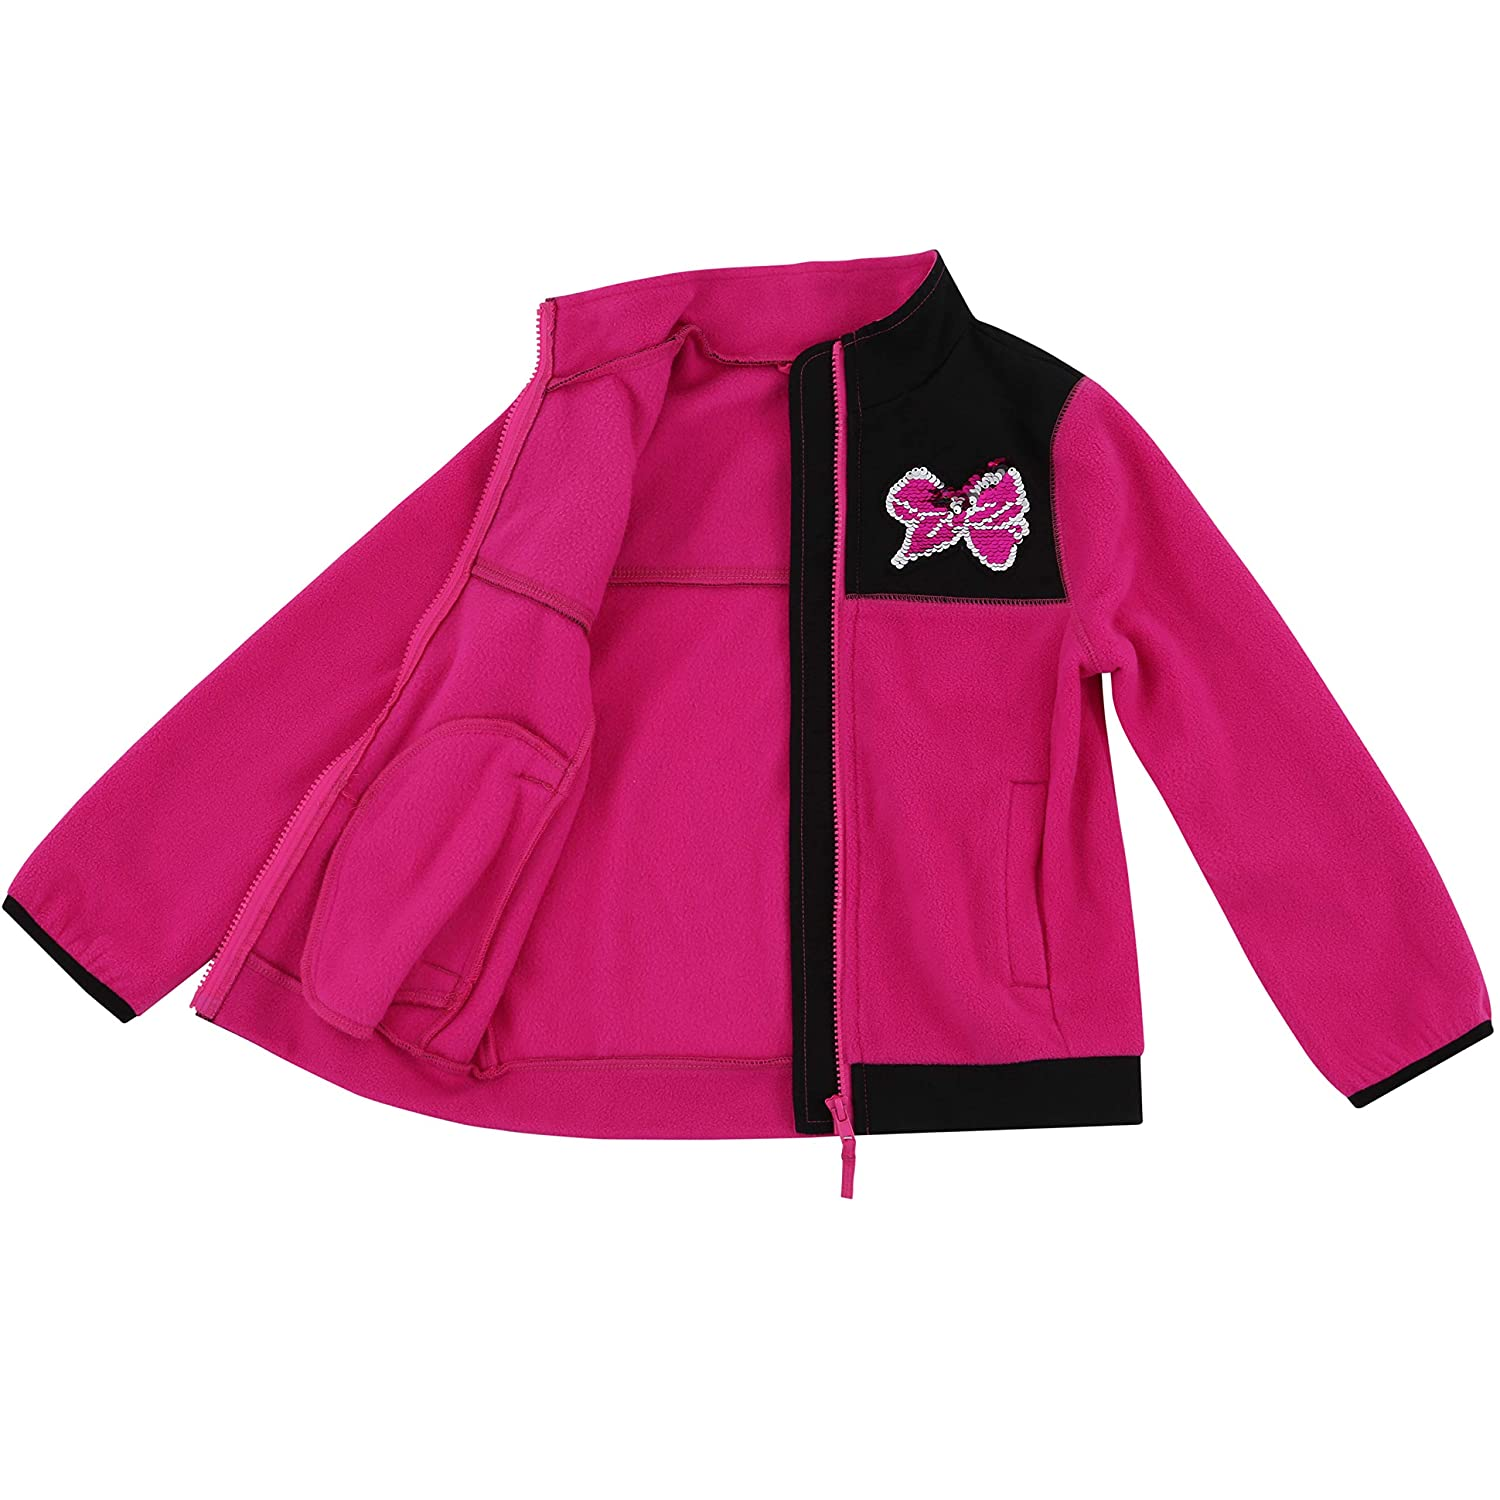 Dreamwave Toddler and Big Girl Relaxed Fit Lightweight Zip Up Fleece Jacket Hoodie Sweatshirt Pullover